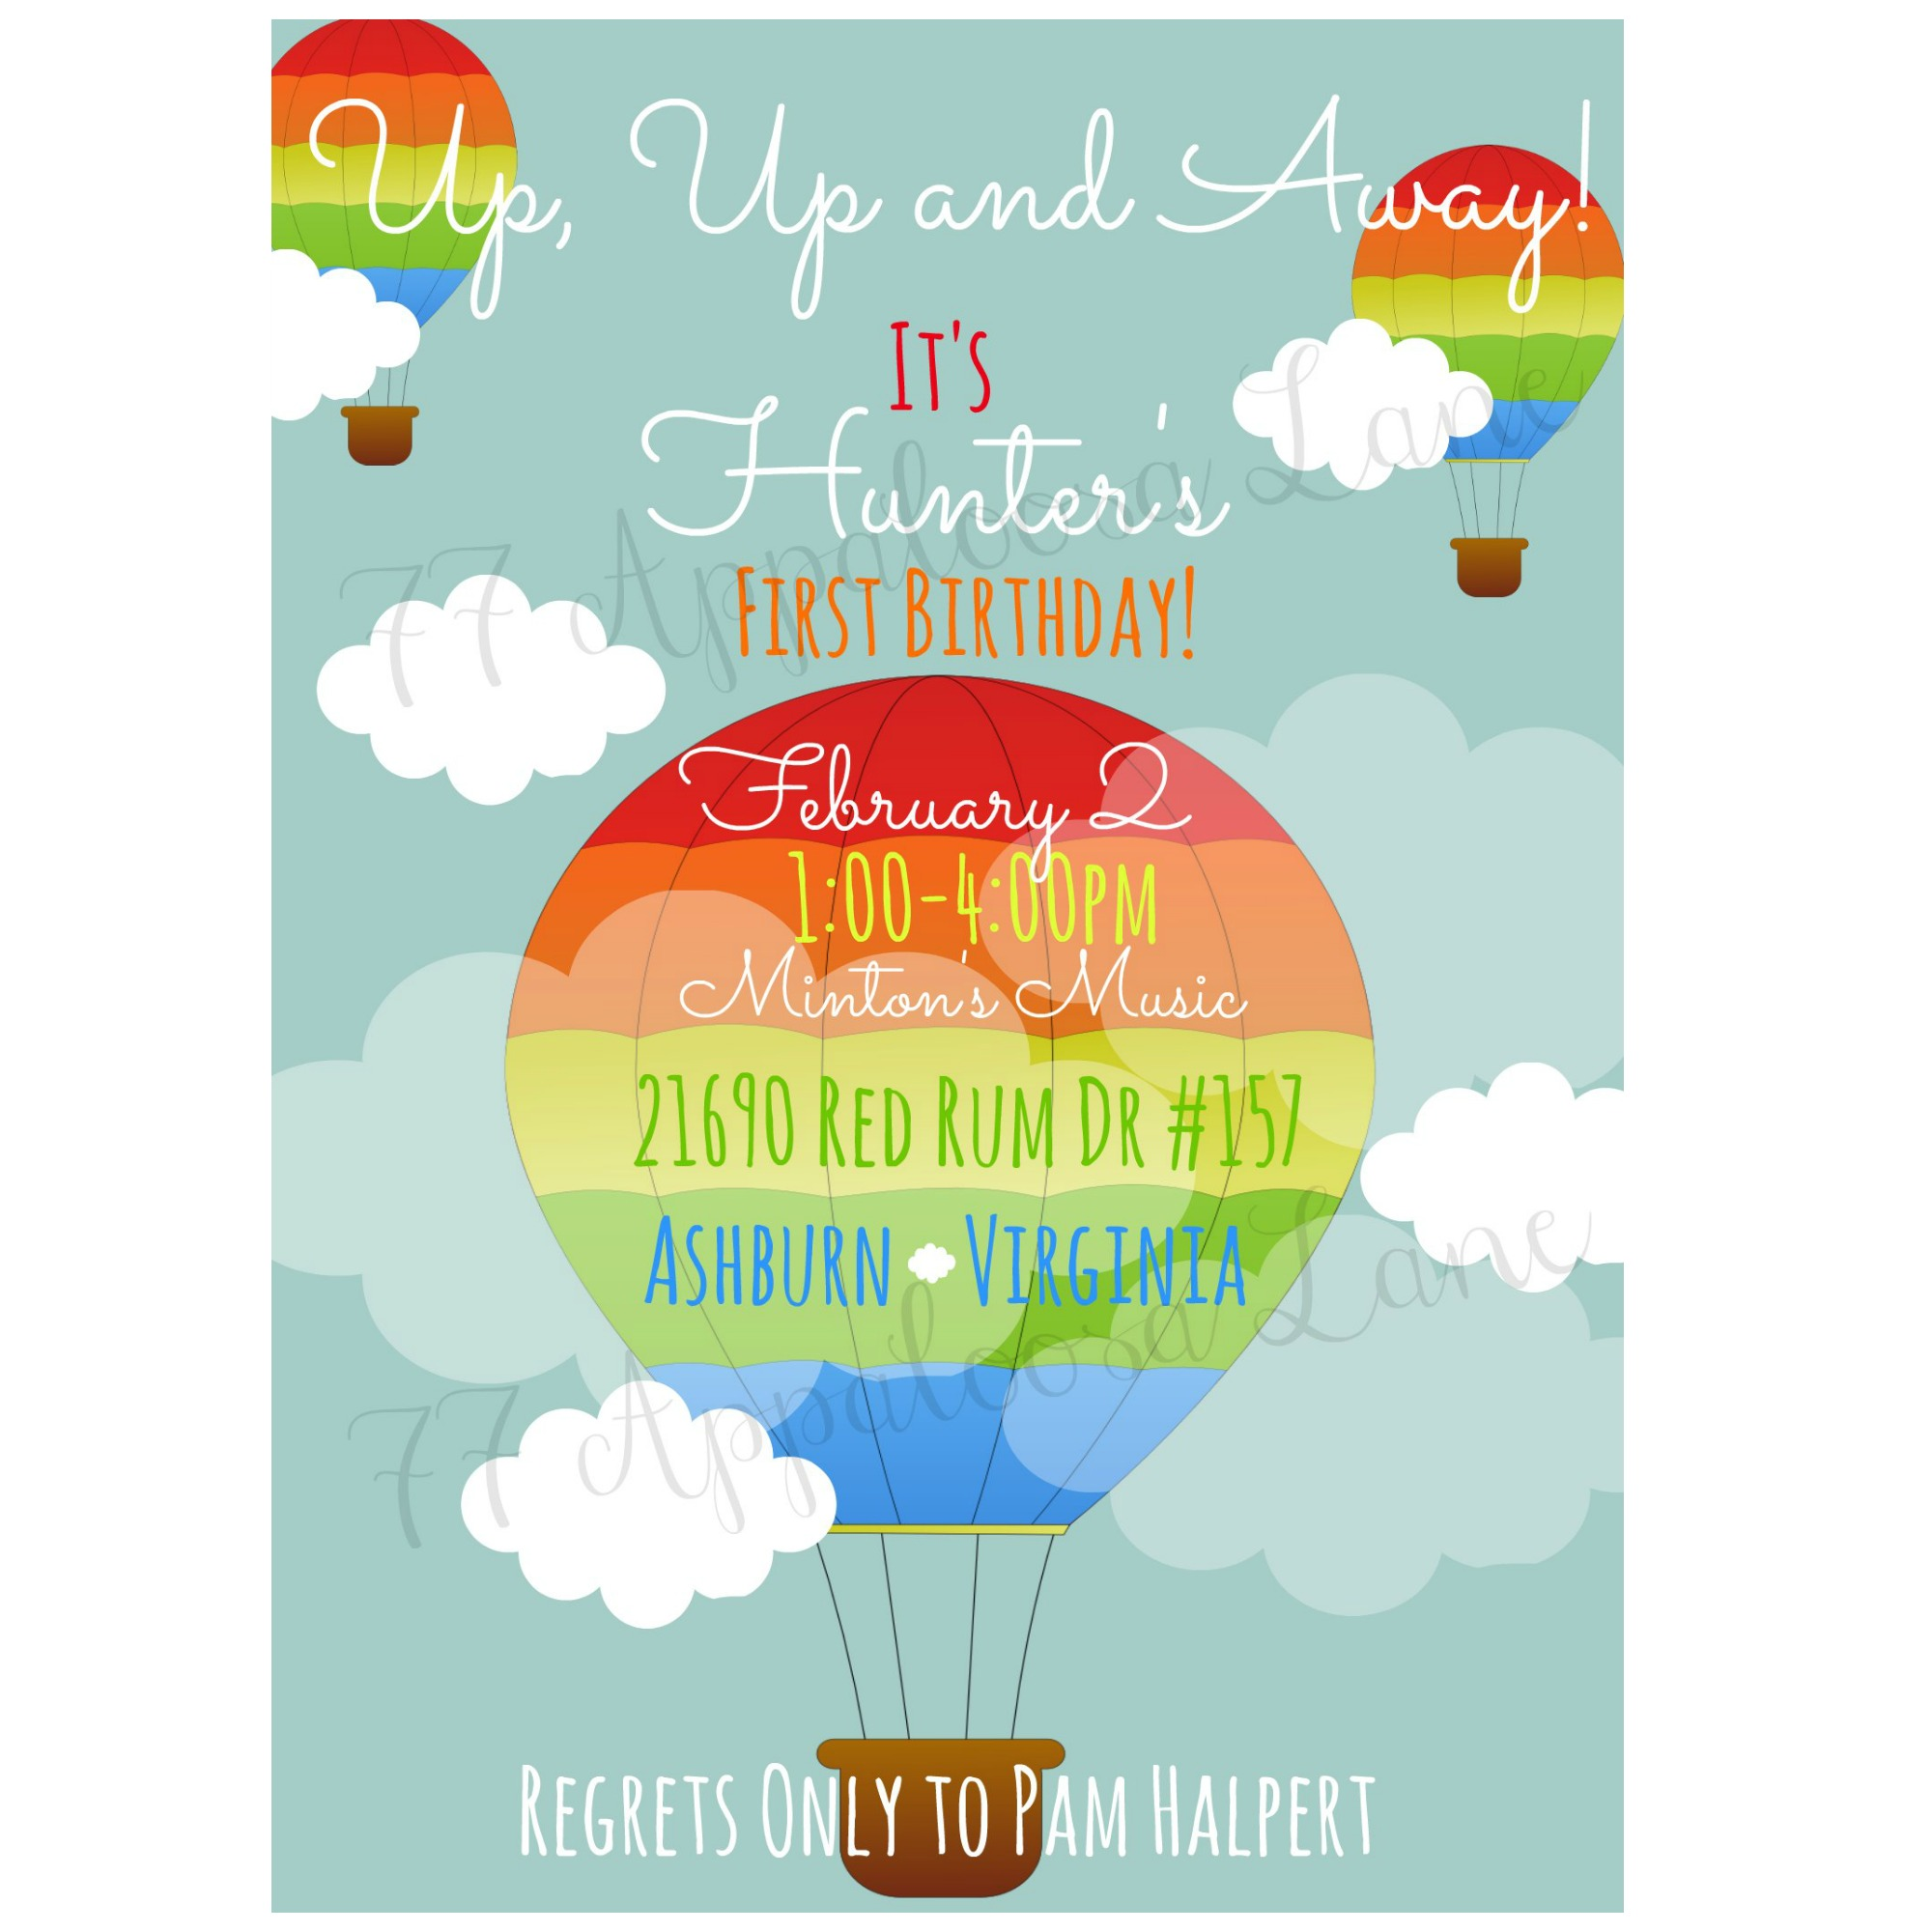 Up Up & Away! Hot Air Balloon Birthday Invitation · 77 Appaloosa ...